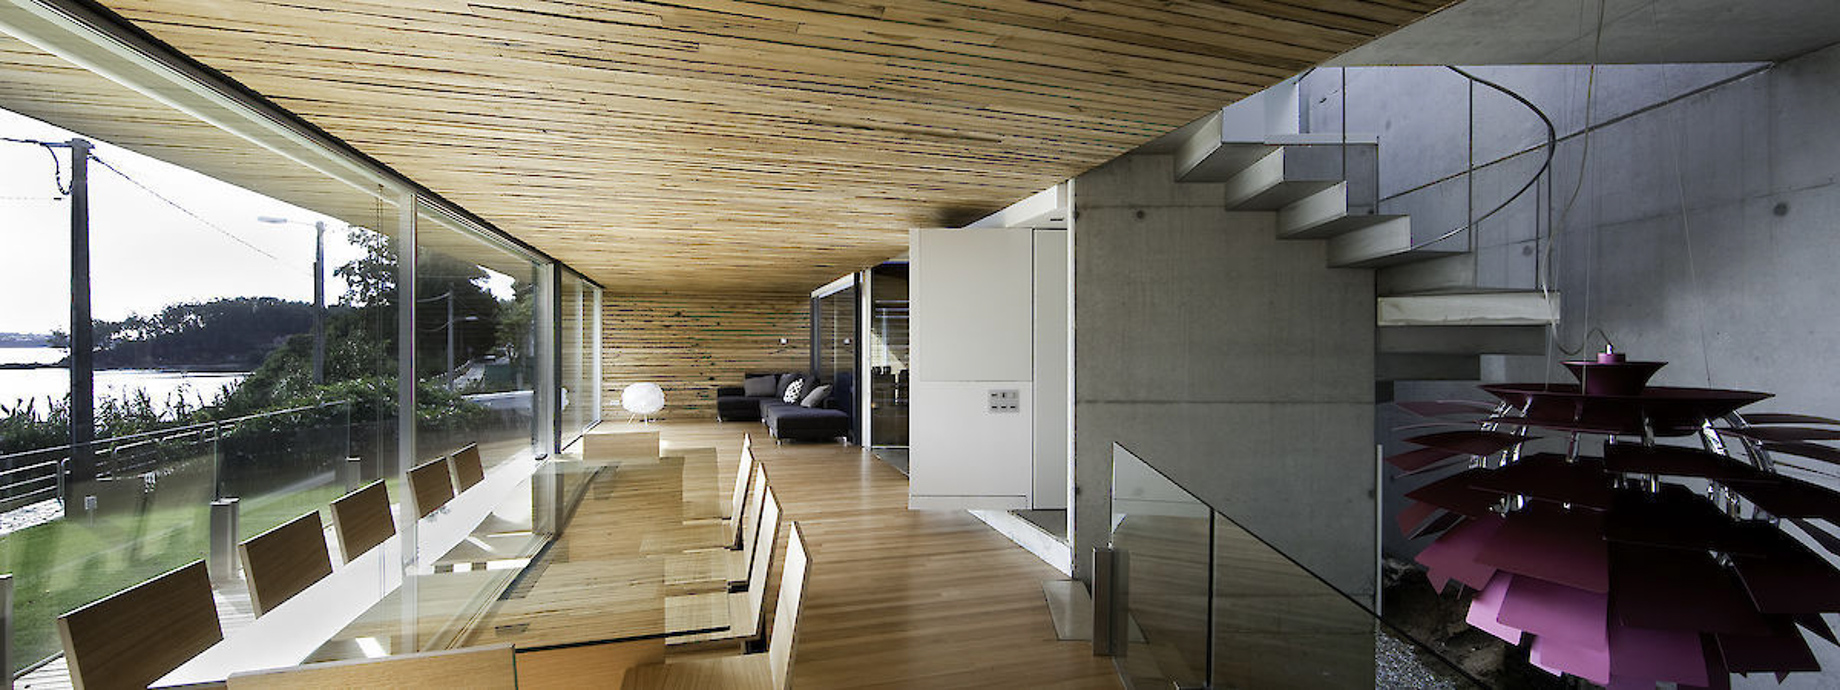 Dezanove Luxury House Residence - Galicia, Spain